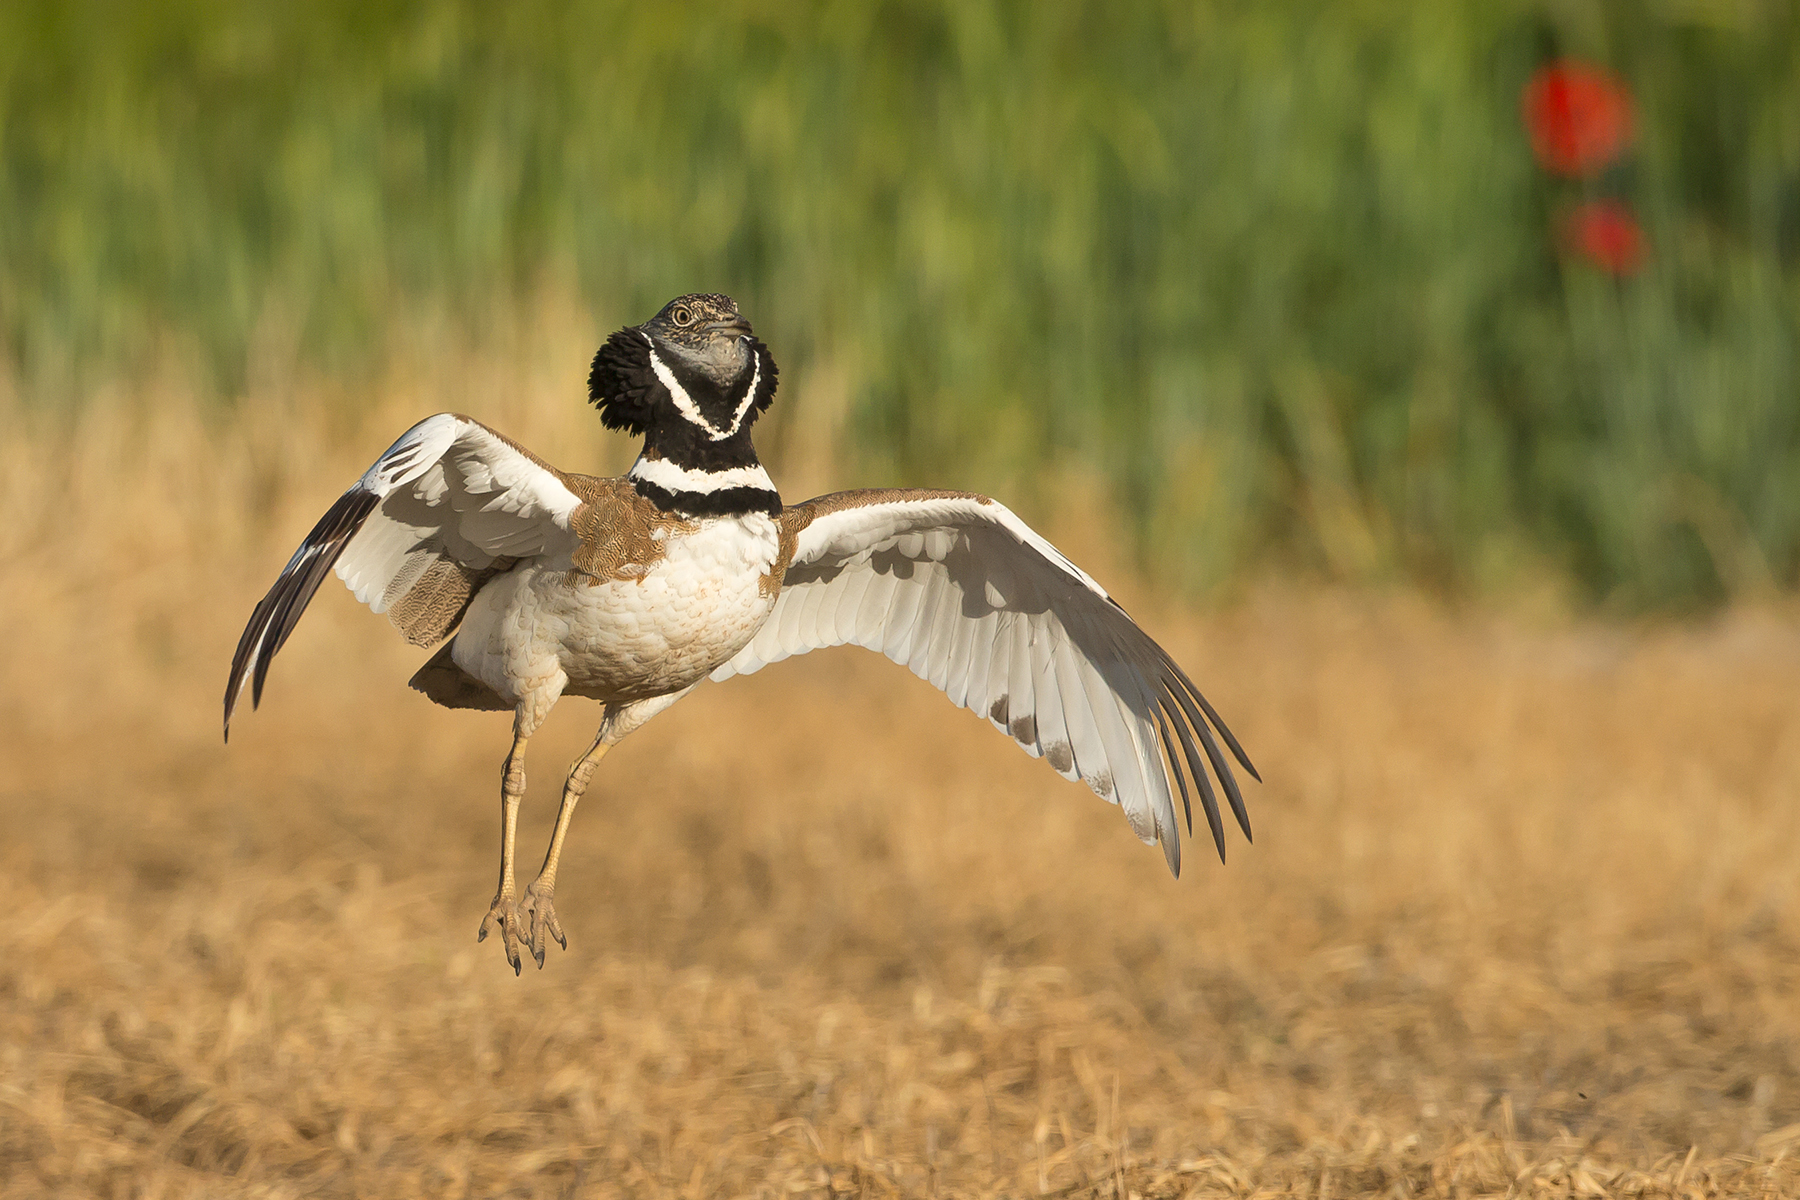 Little Bustard on our Spain birding tour (image by Mike Watson)